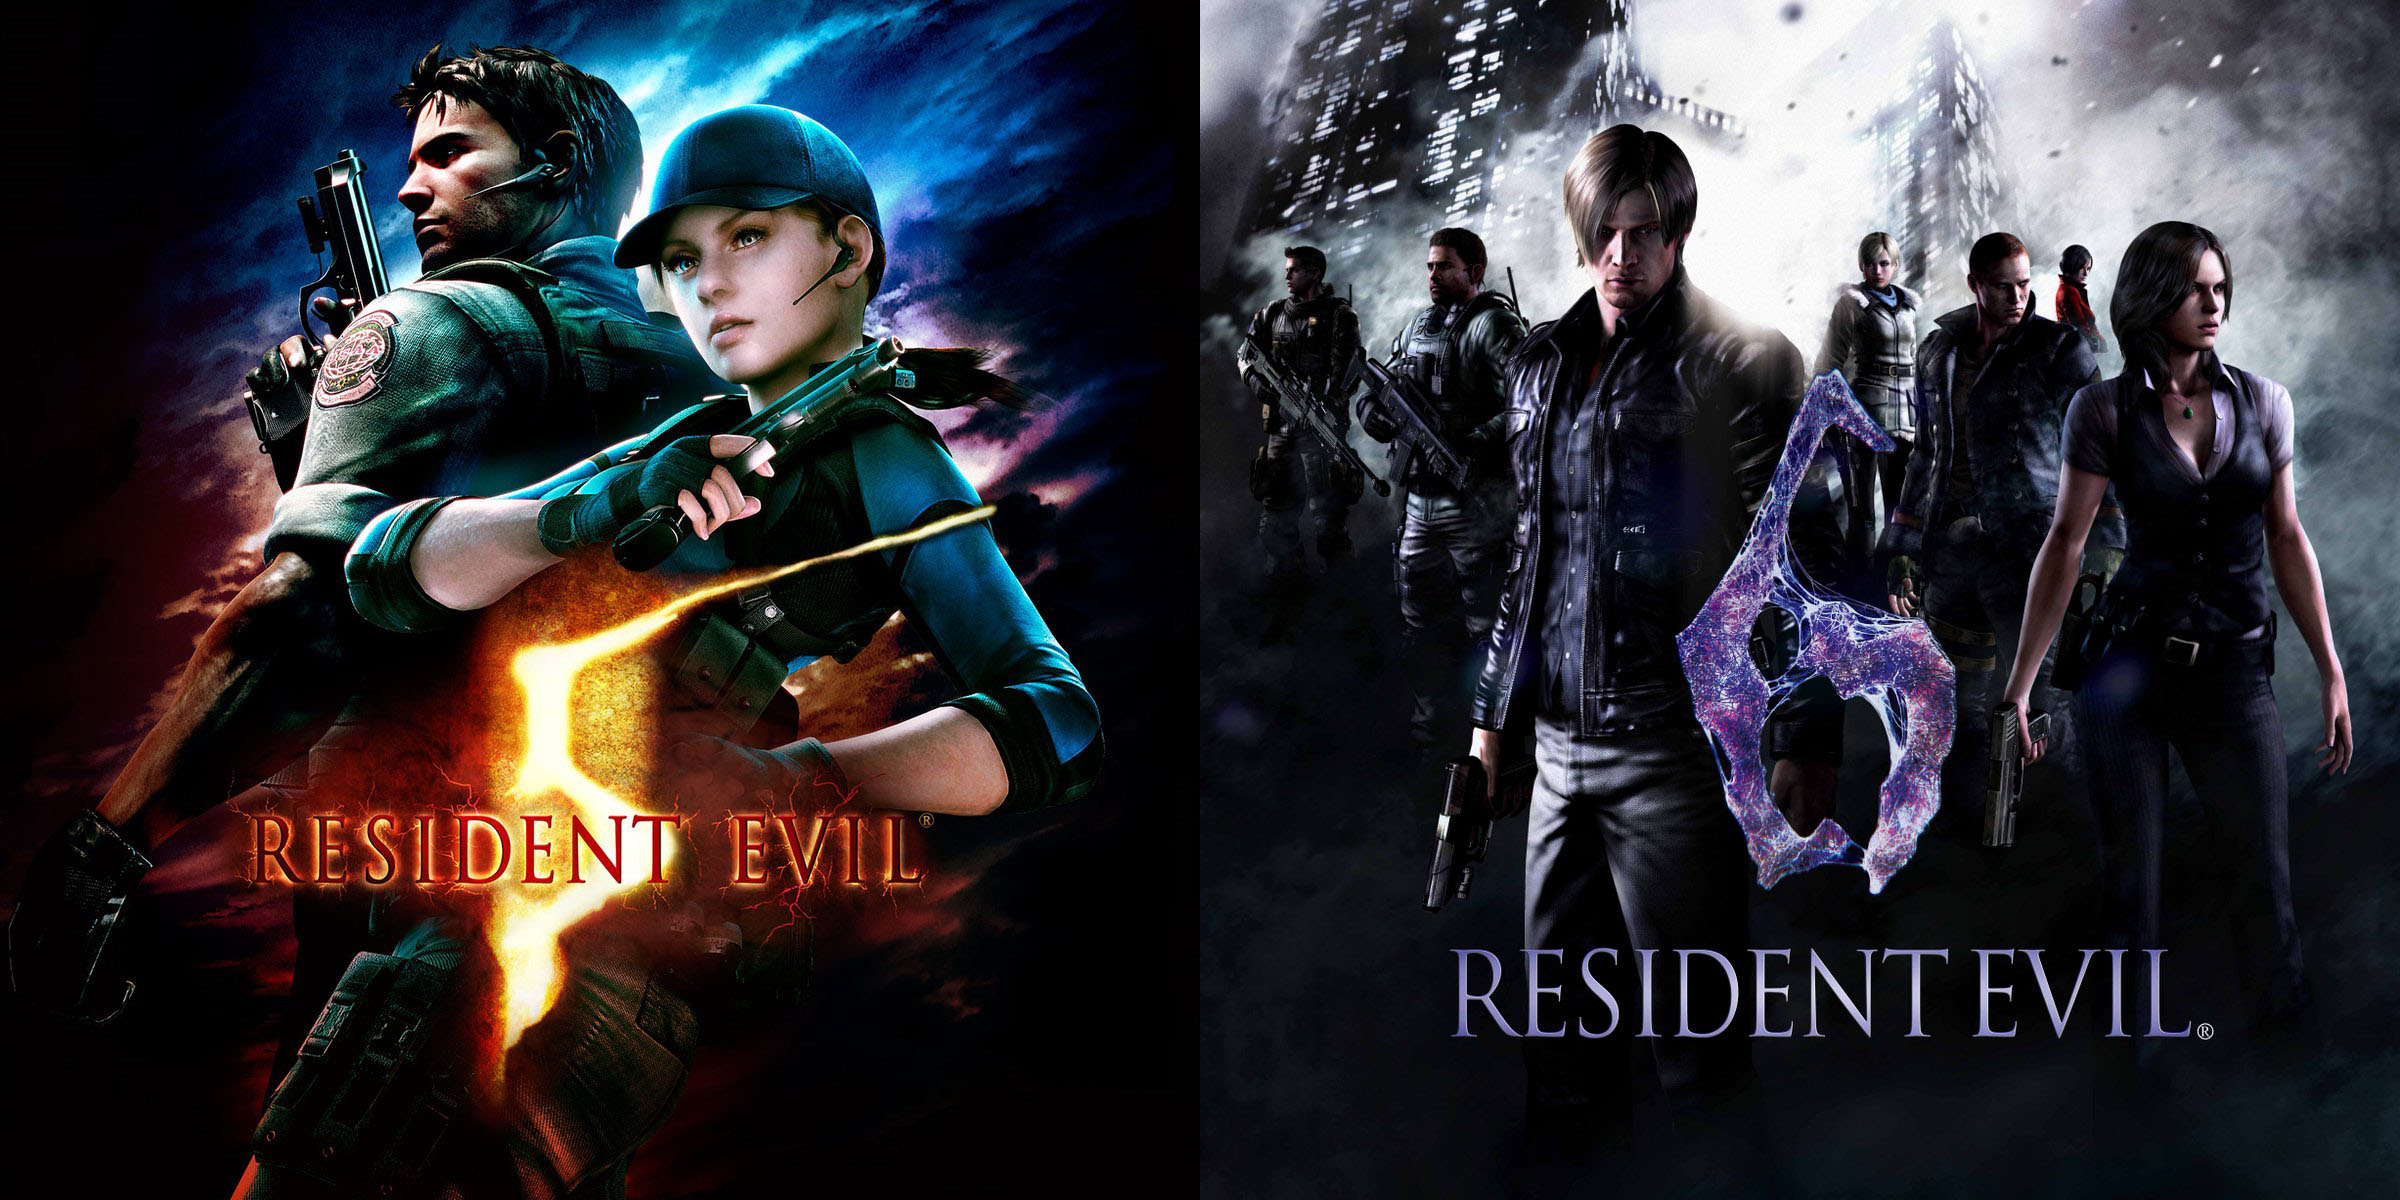 Review Resident Evil 5 And 6 On Nintendo Switch The Series Black Sheep Get White Hot Ports Bloody Disgusting